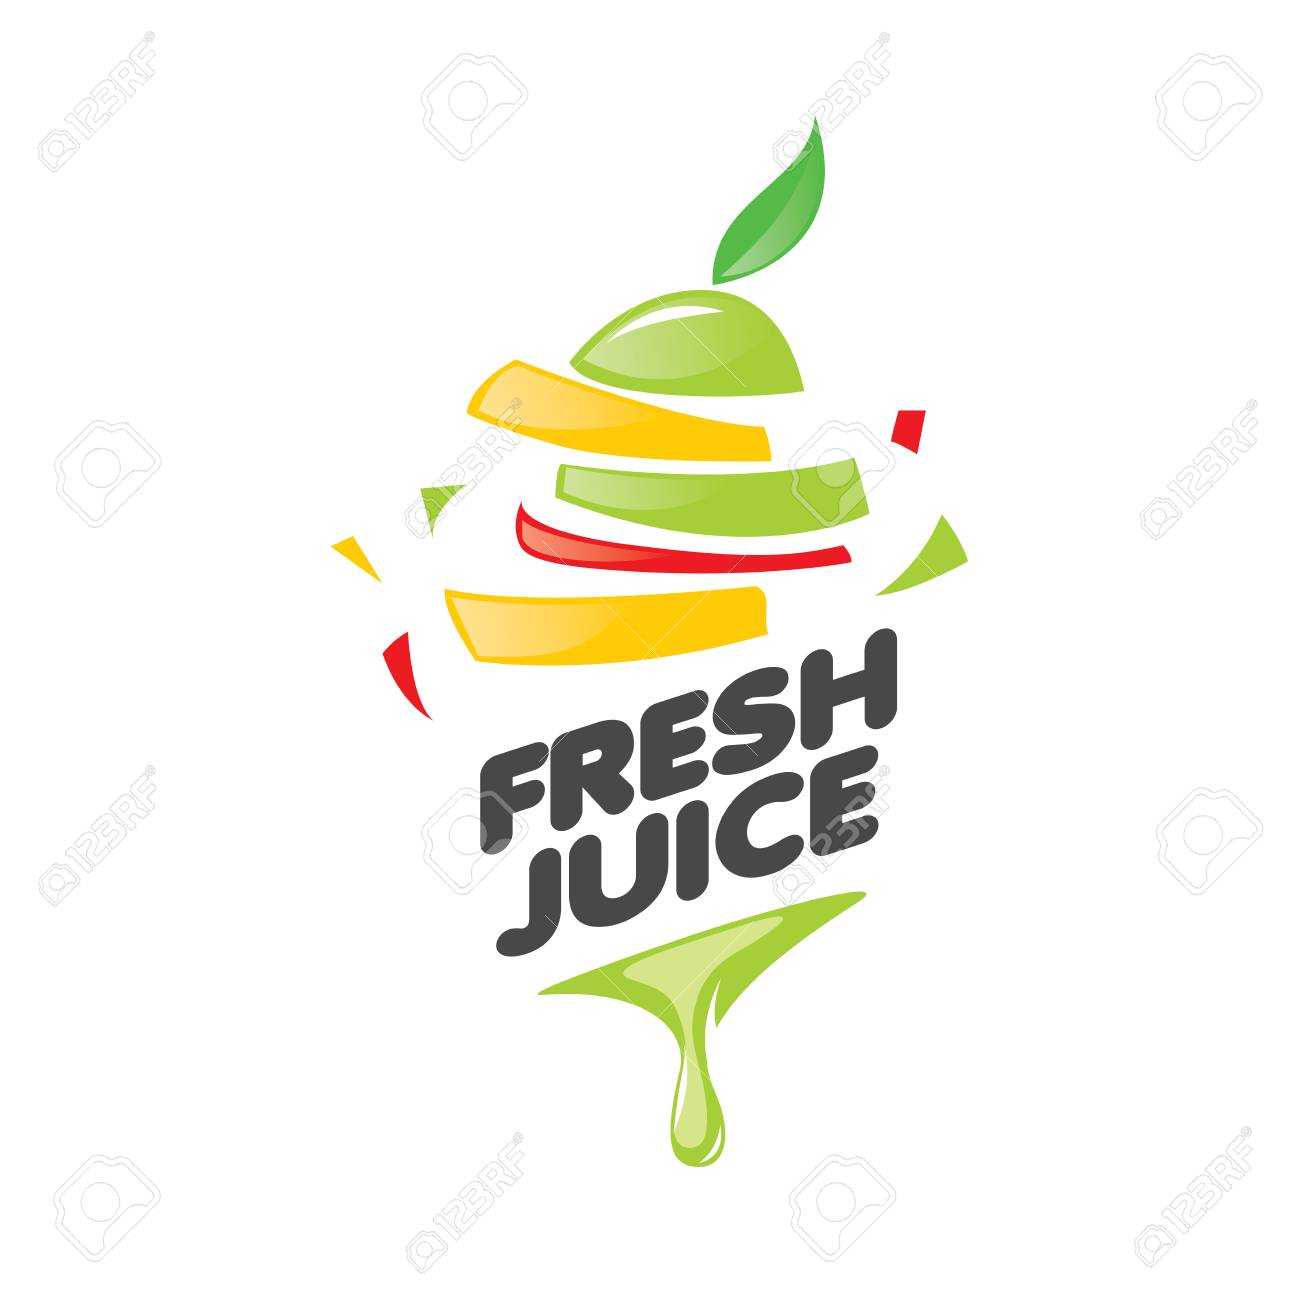 logo design template fresh juice vector illustration of icon royalty free cliparts vectors and stock illustration image 67425536 logo design template fresh juice vector illustration of icon